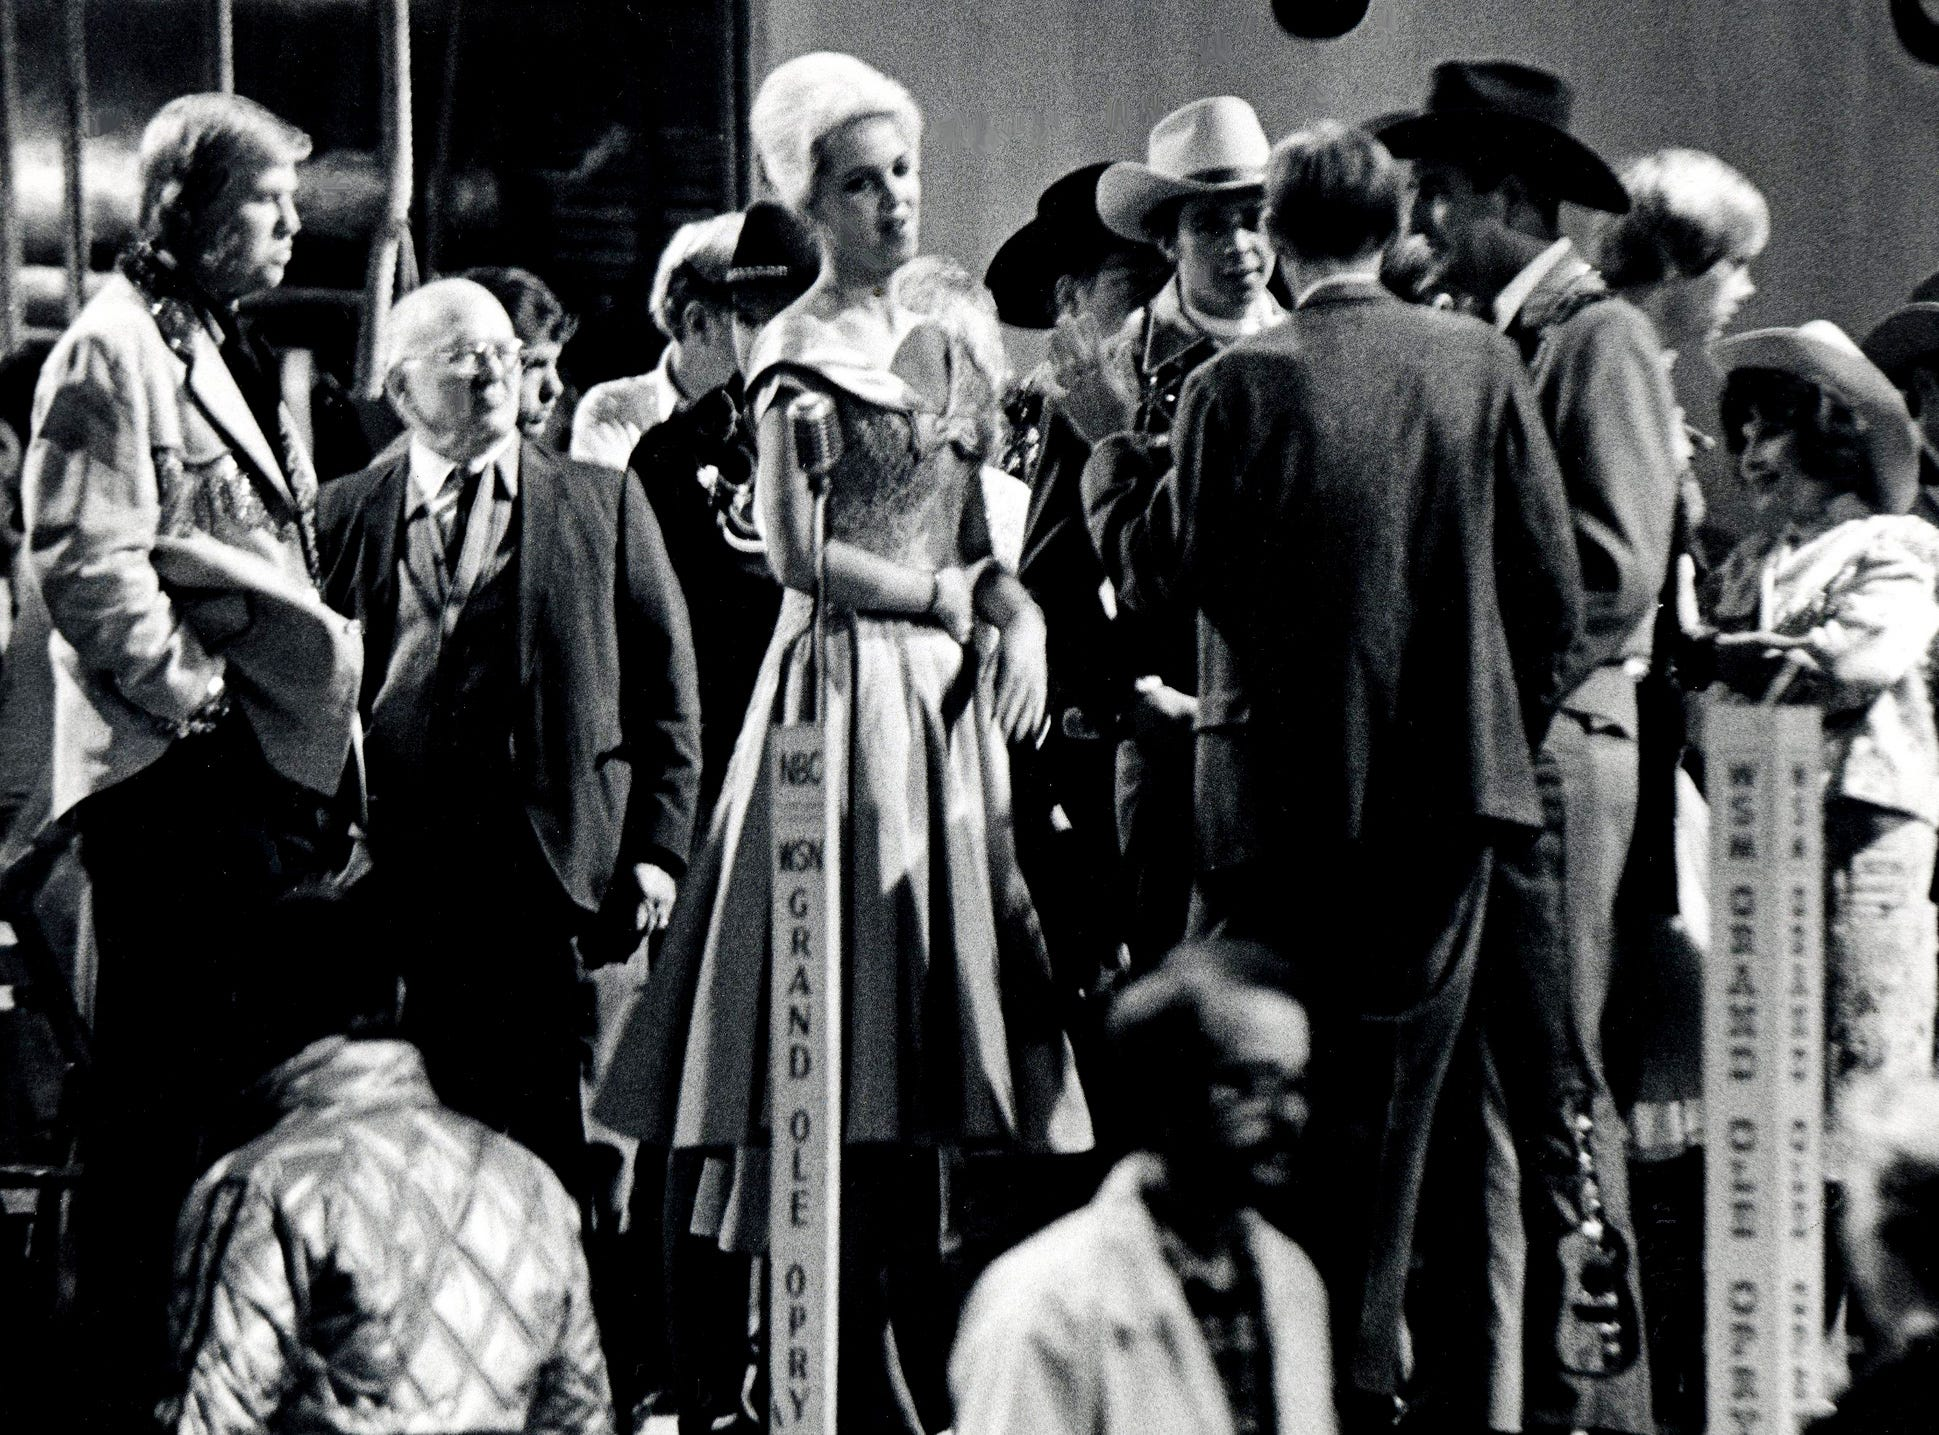 """Onstage at the Ryman Auditorium on April 10, 1979, the look of the Grand Ole Opry circa 1961 was recreated, as costumed actors and extras rehearsed the informal milling around that has always marked an Opry performance for taping of the """"Coal Miner's Daughter"""" movie."""